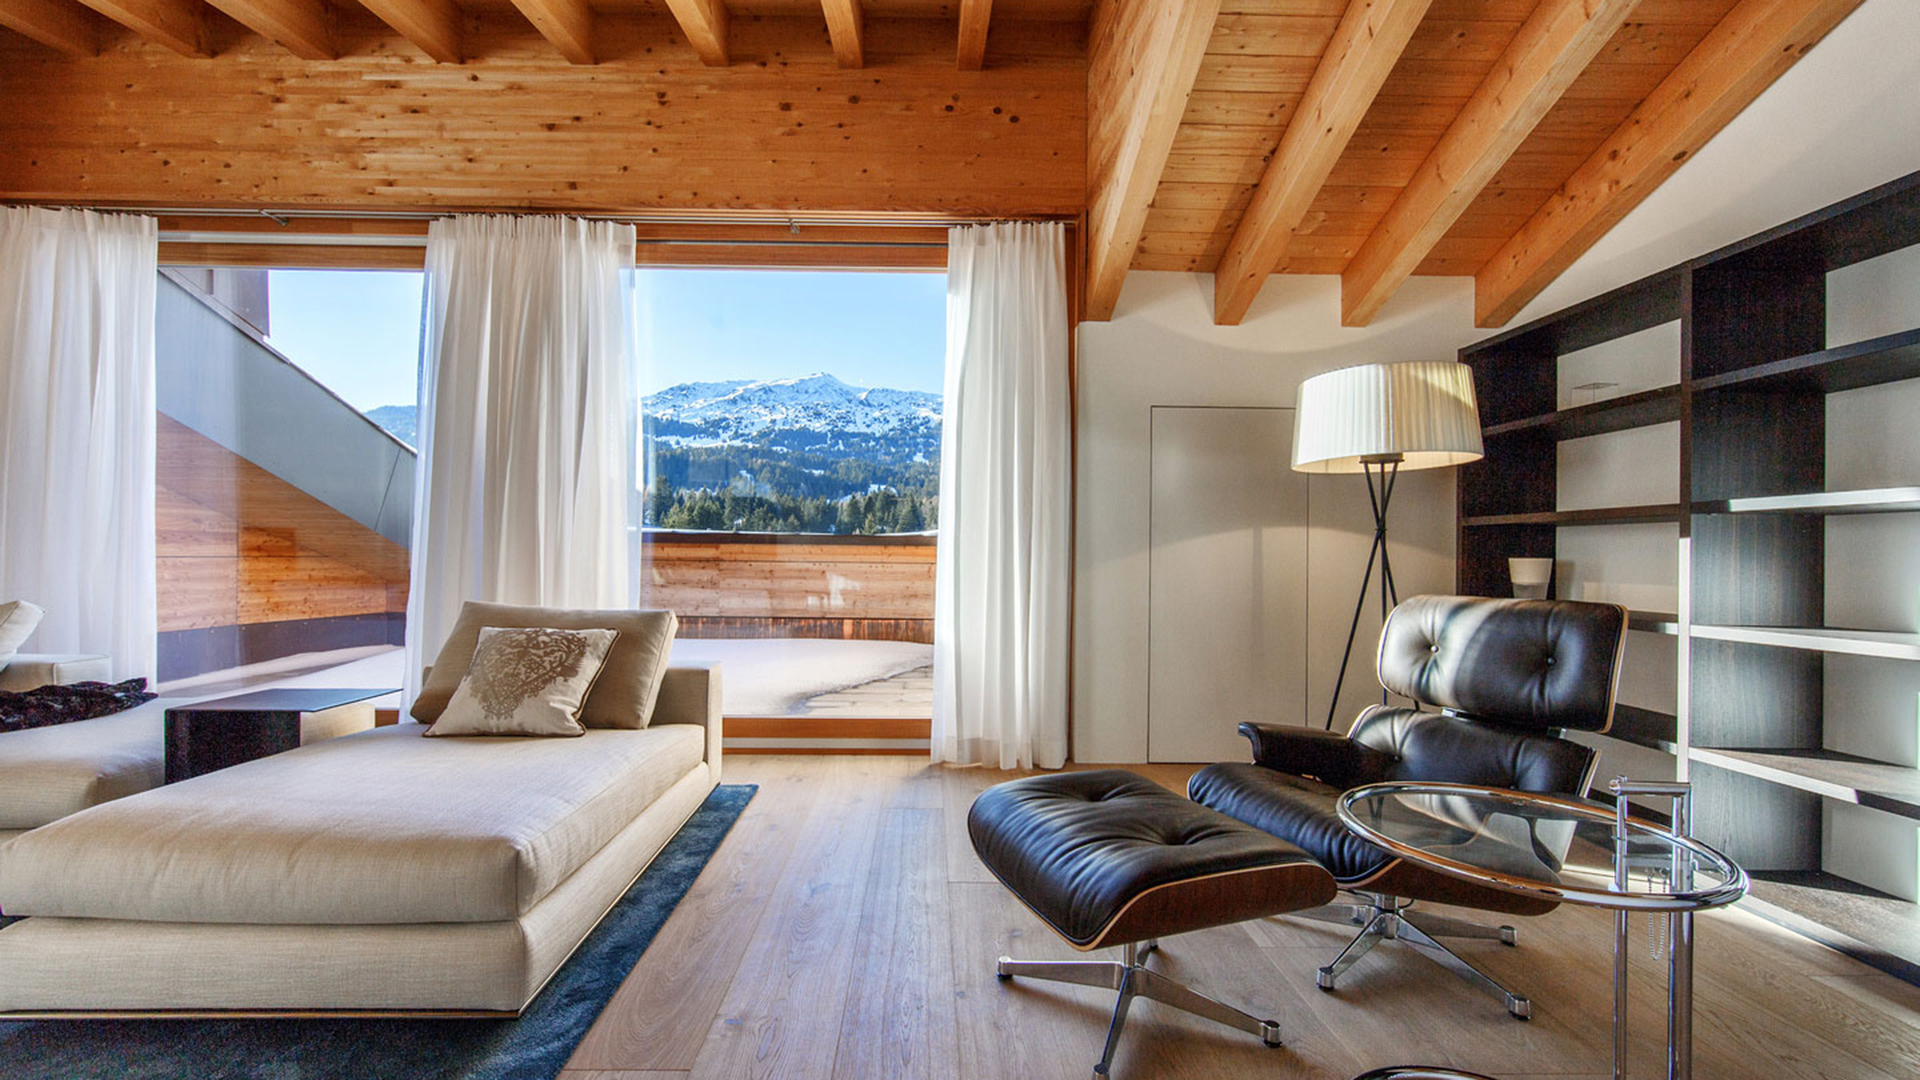 The Corona Suite Apartments, Switzerland